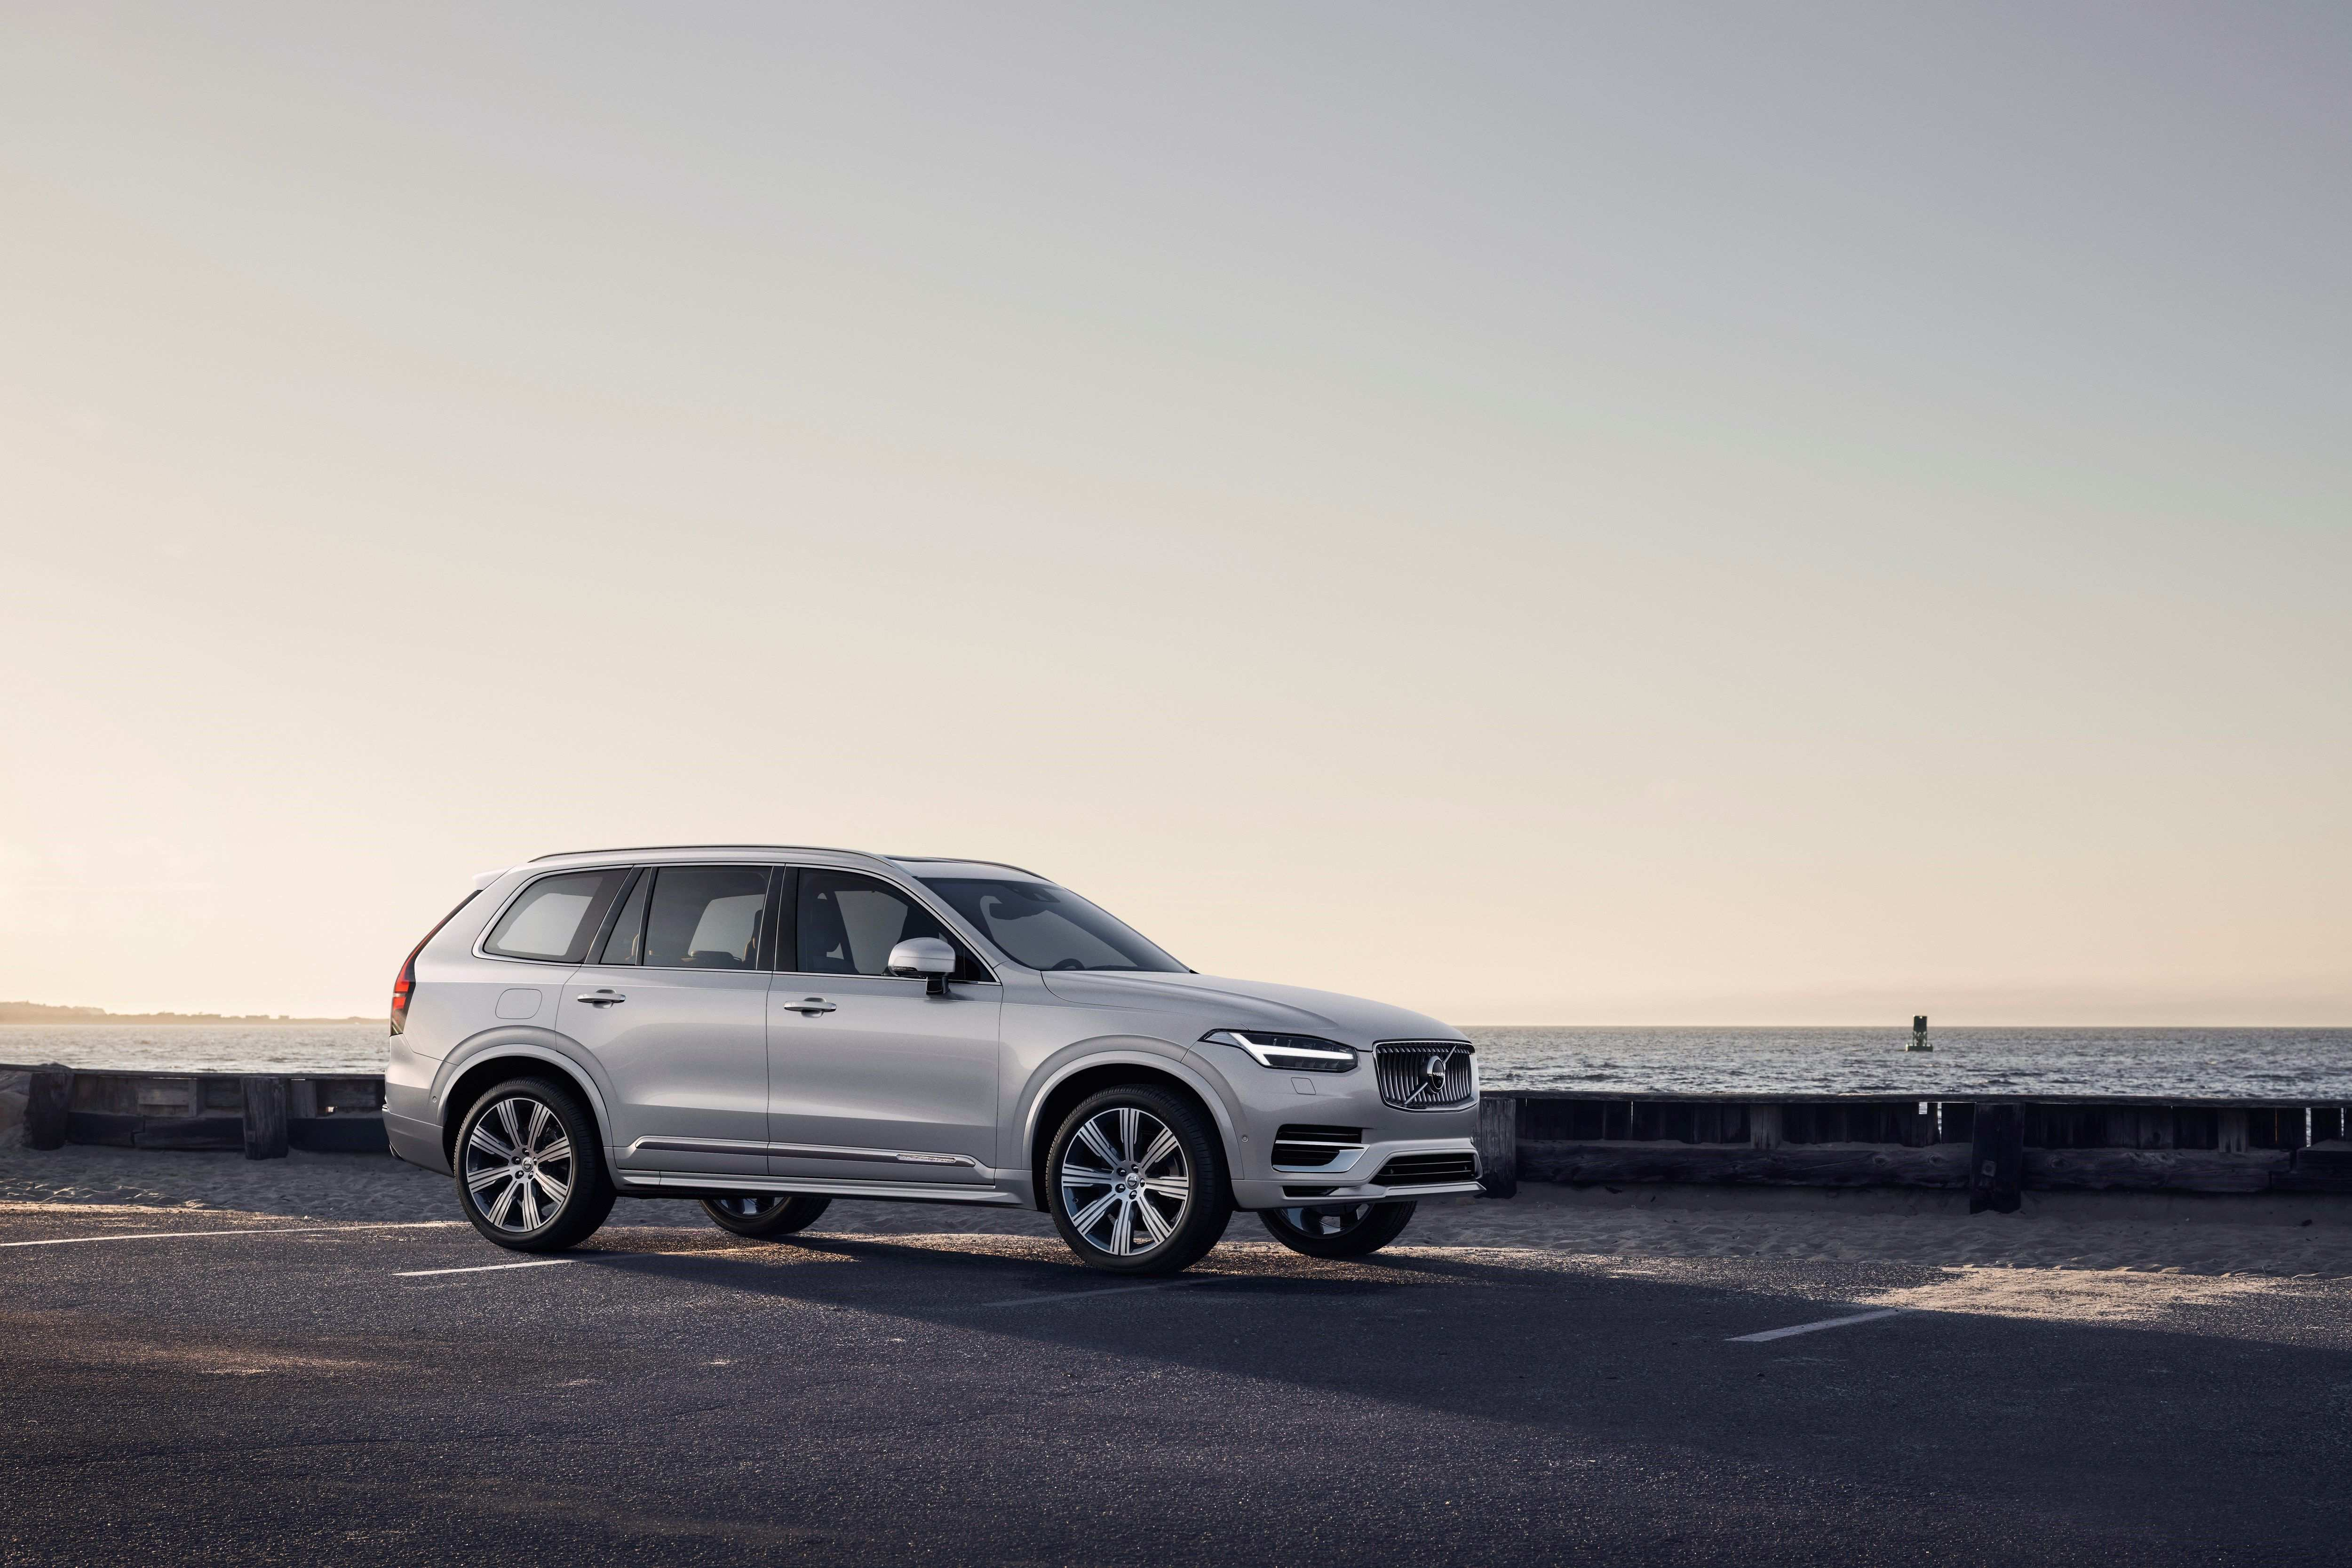 77 Concept of Difference Between 2019 And 2020 Volvo Xc90 Performance by Difference Between 2019 And 2020 Volvo Xc90